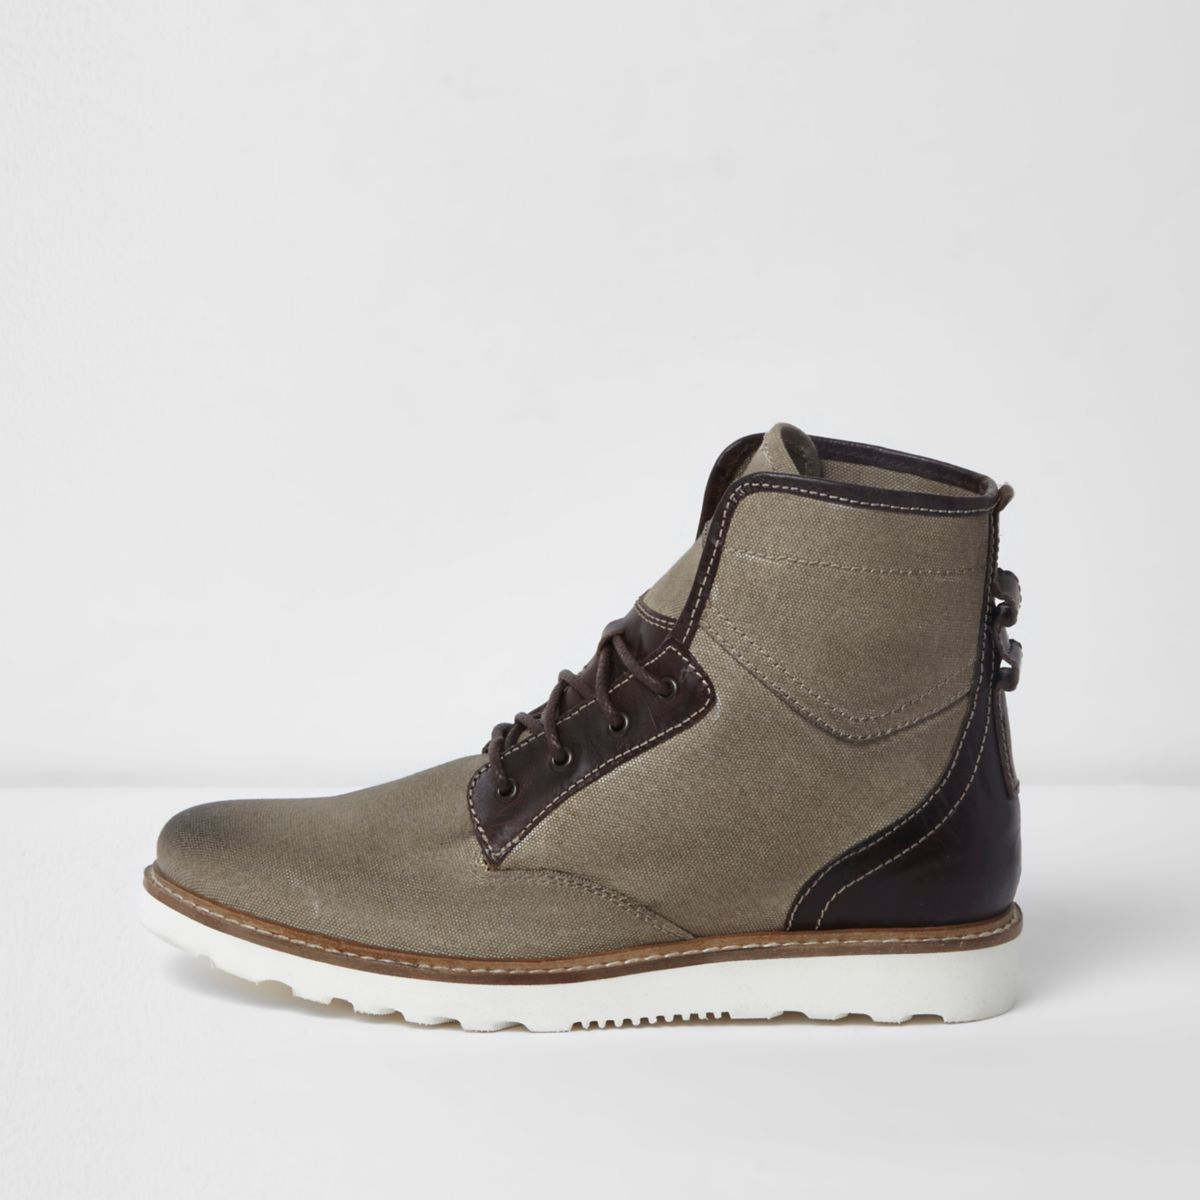 Khaki lace-up canvas work boots